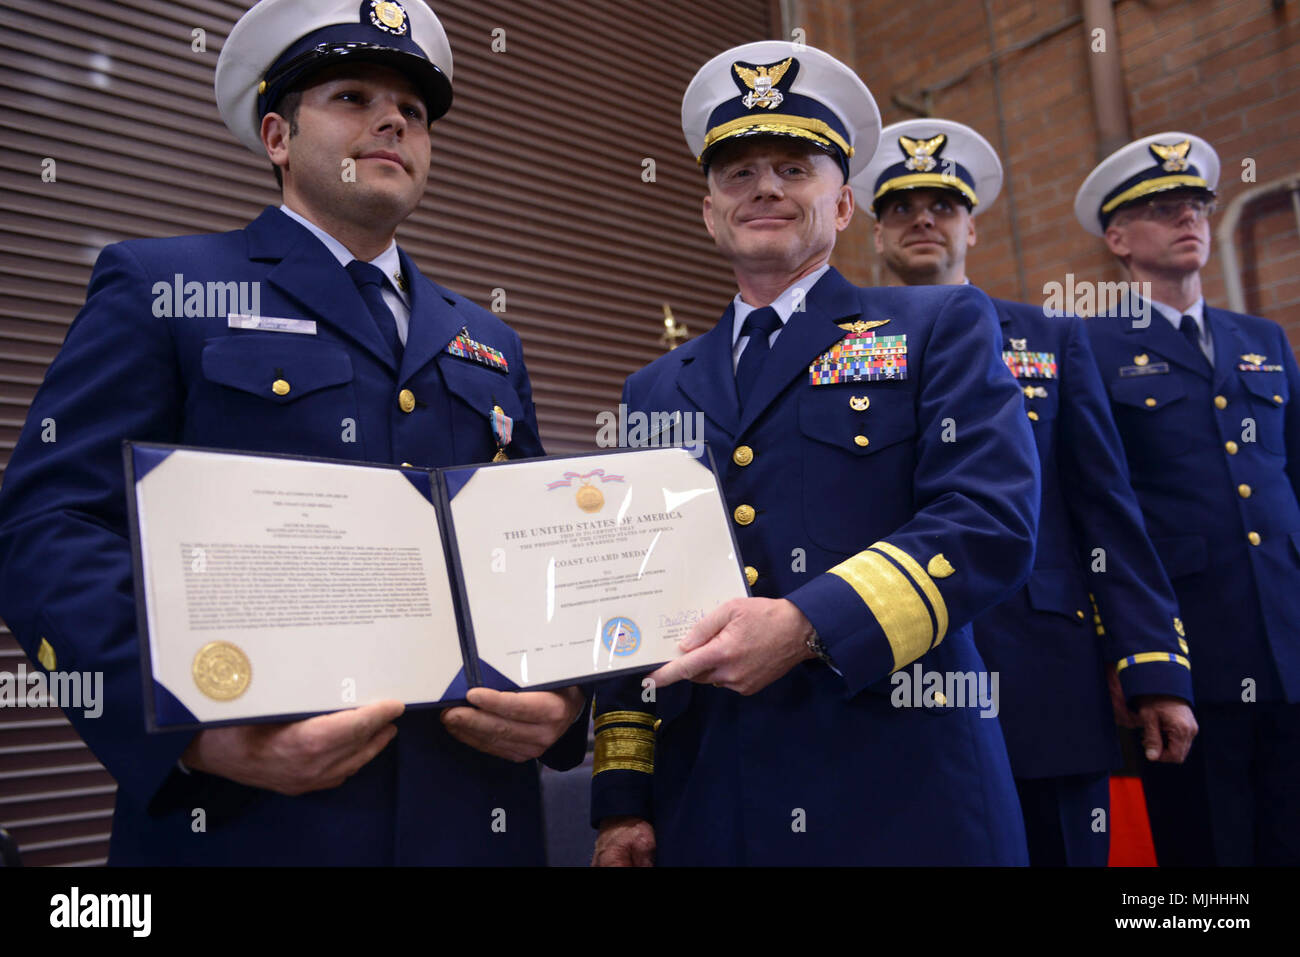 Rear Adm. David Throop, commander Coast Guard 13th District, presents the Coast Guard Medal to Petty Officer 1st Class Jacob Hylkema, a boatswain's mate at Coast Guard Station Grays Harbor, during a ceremony held at the station's base in Westport, Wash., April 6, 2018.    The Coast Guard Medal is the 3rd highest award that a Coast Guardsman can be awarded during peacetime.    U.S. Coast Guard - Stock Image